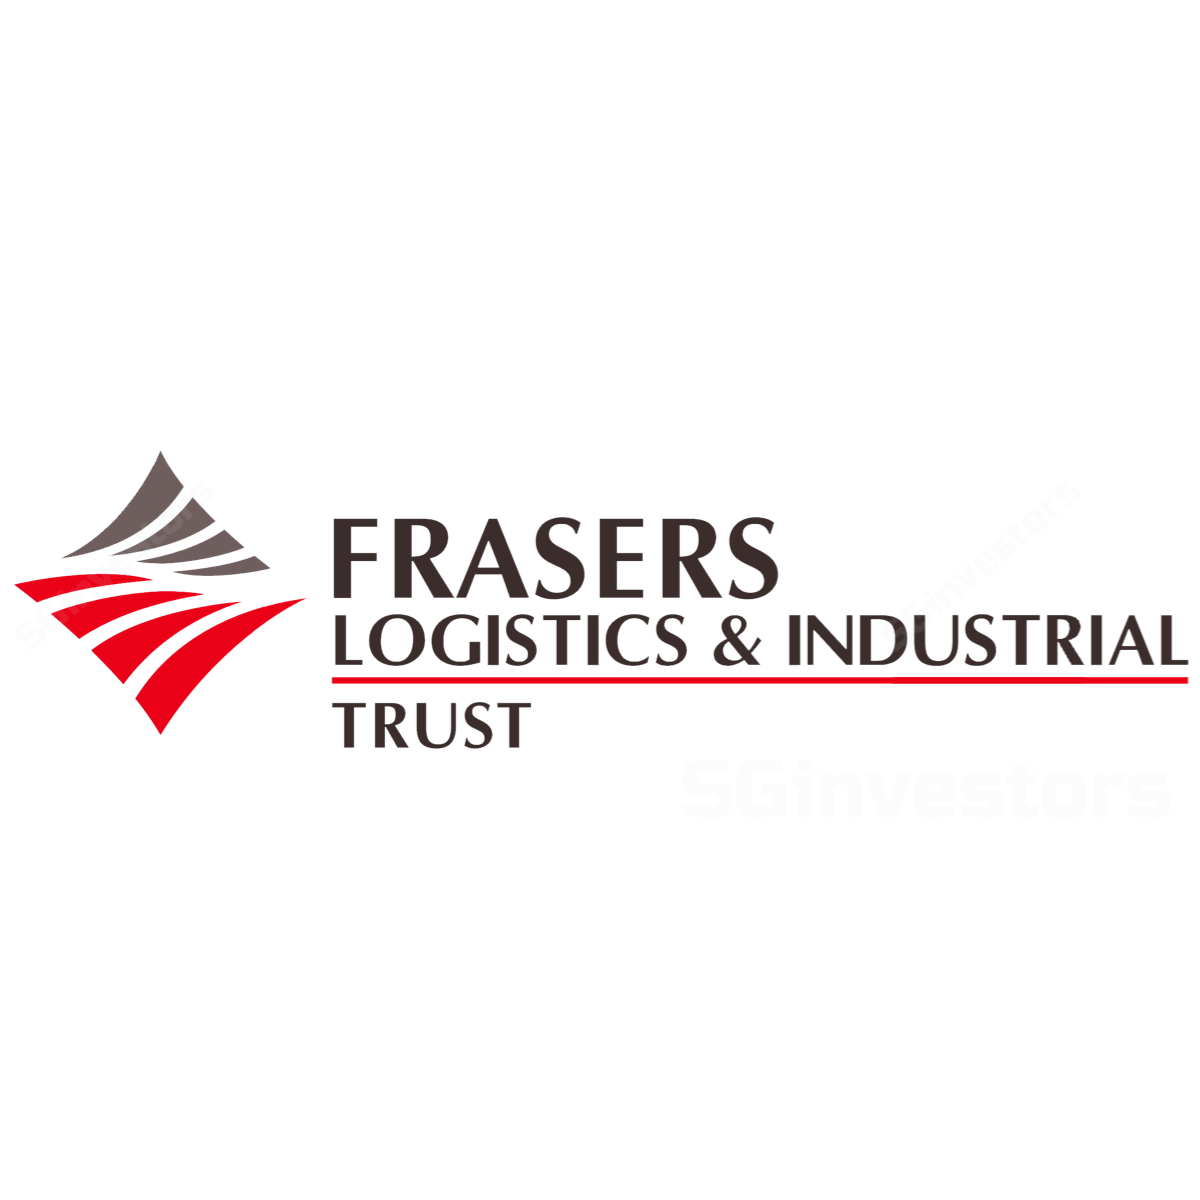 Frasers Logistics & Industrial Trust - OCBC Investment 2017-06-07: Scaling Up On Inorganic Growth